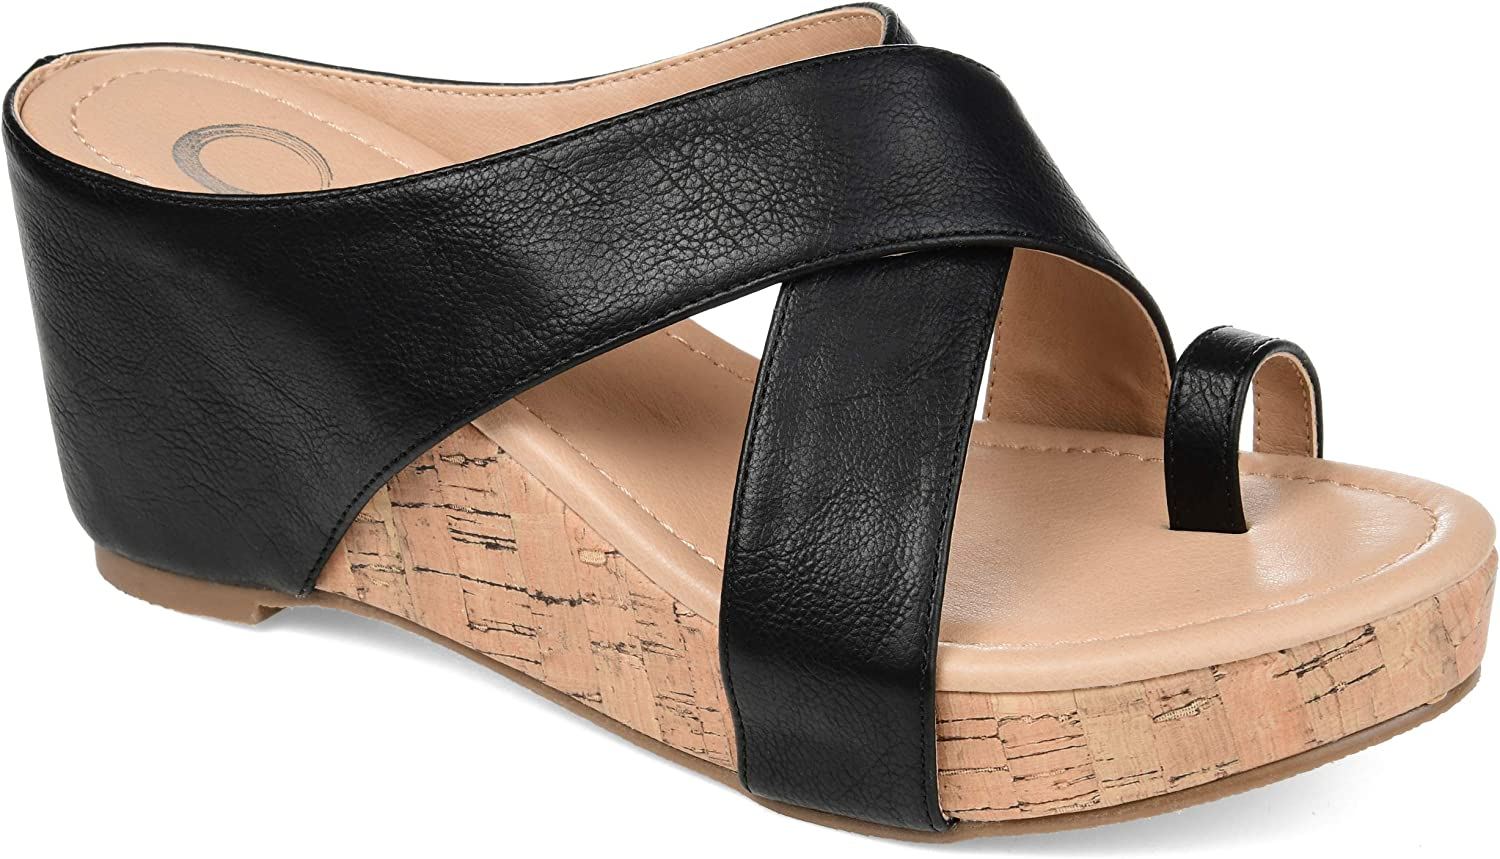 JC Columbus Mall JOURNEE COLLECTION Credence Heeled Women's Sandals